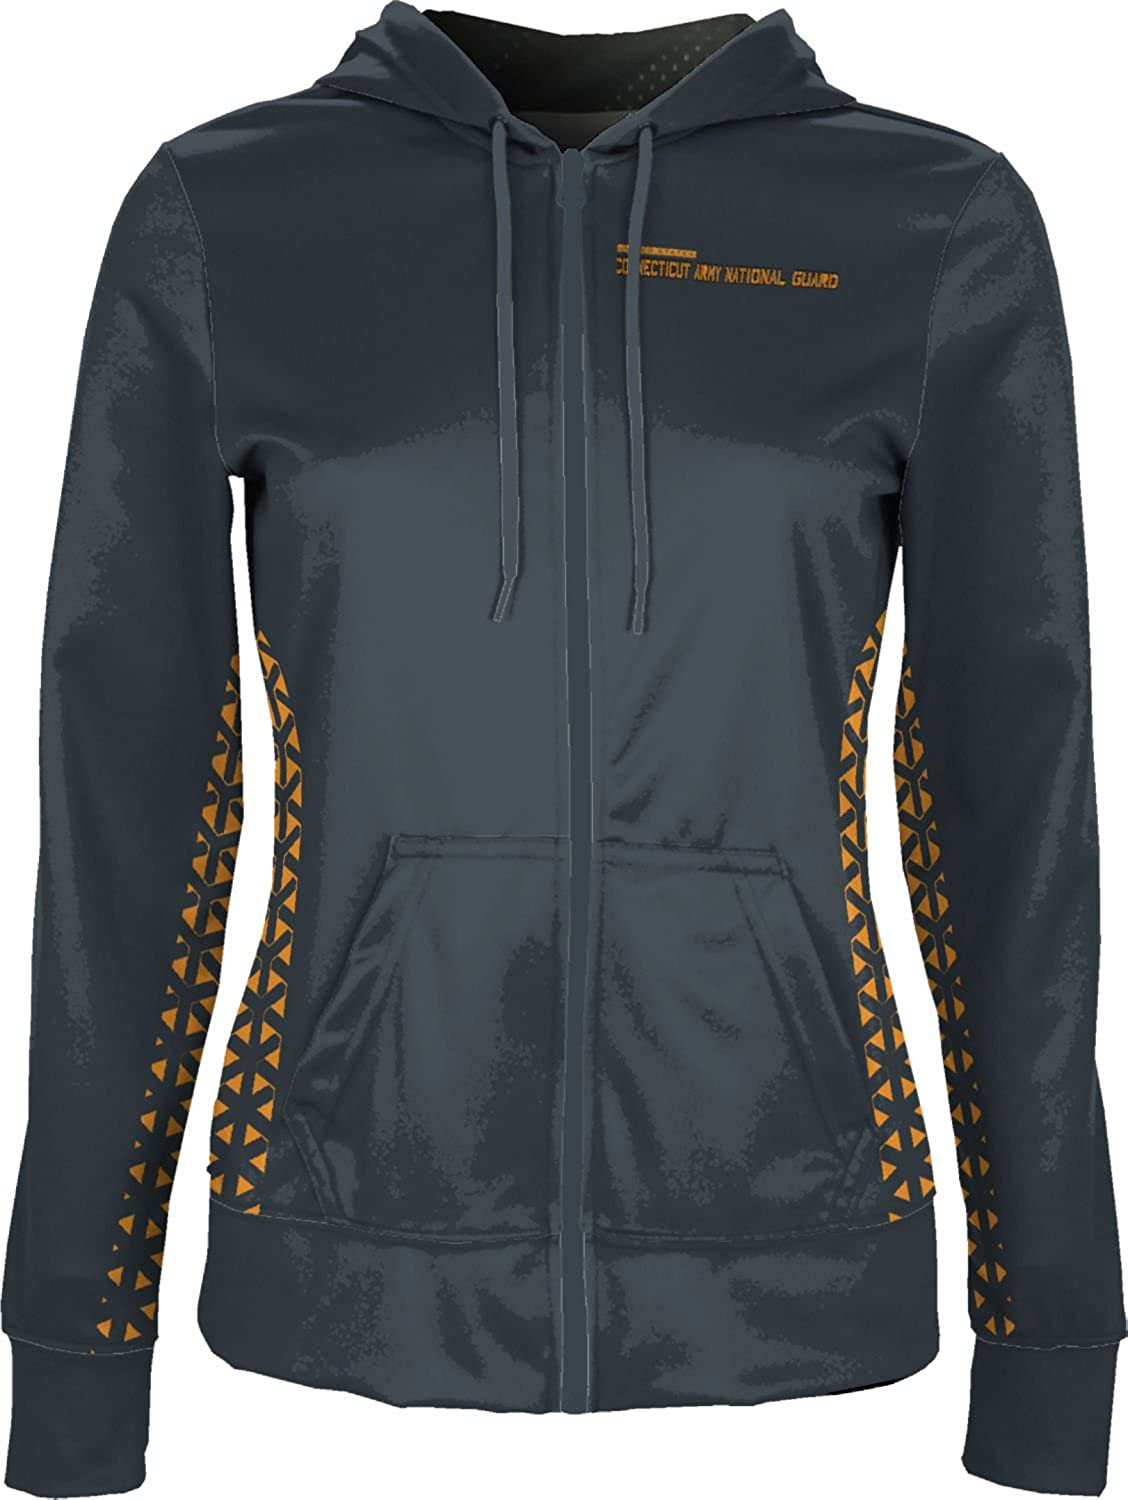 Women's Connecticut Army National Guard Military Geometric Fullzip Hoodie